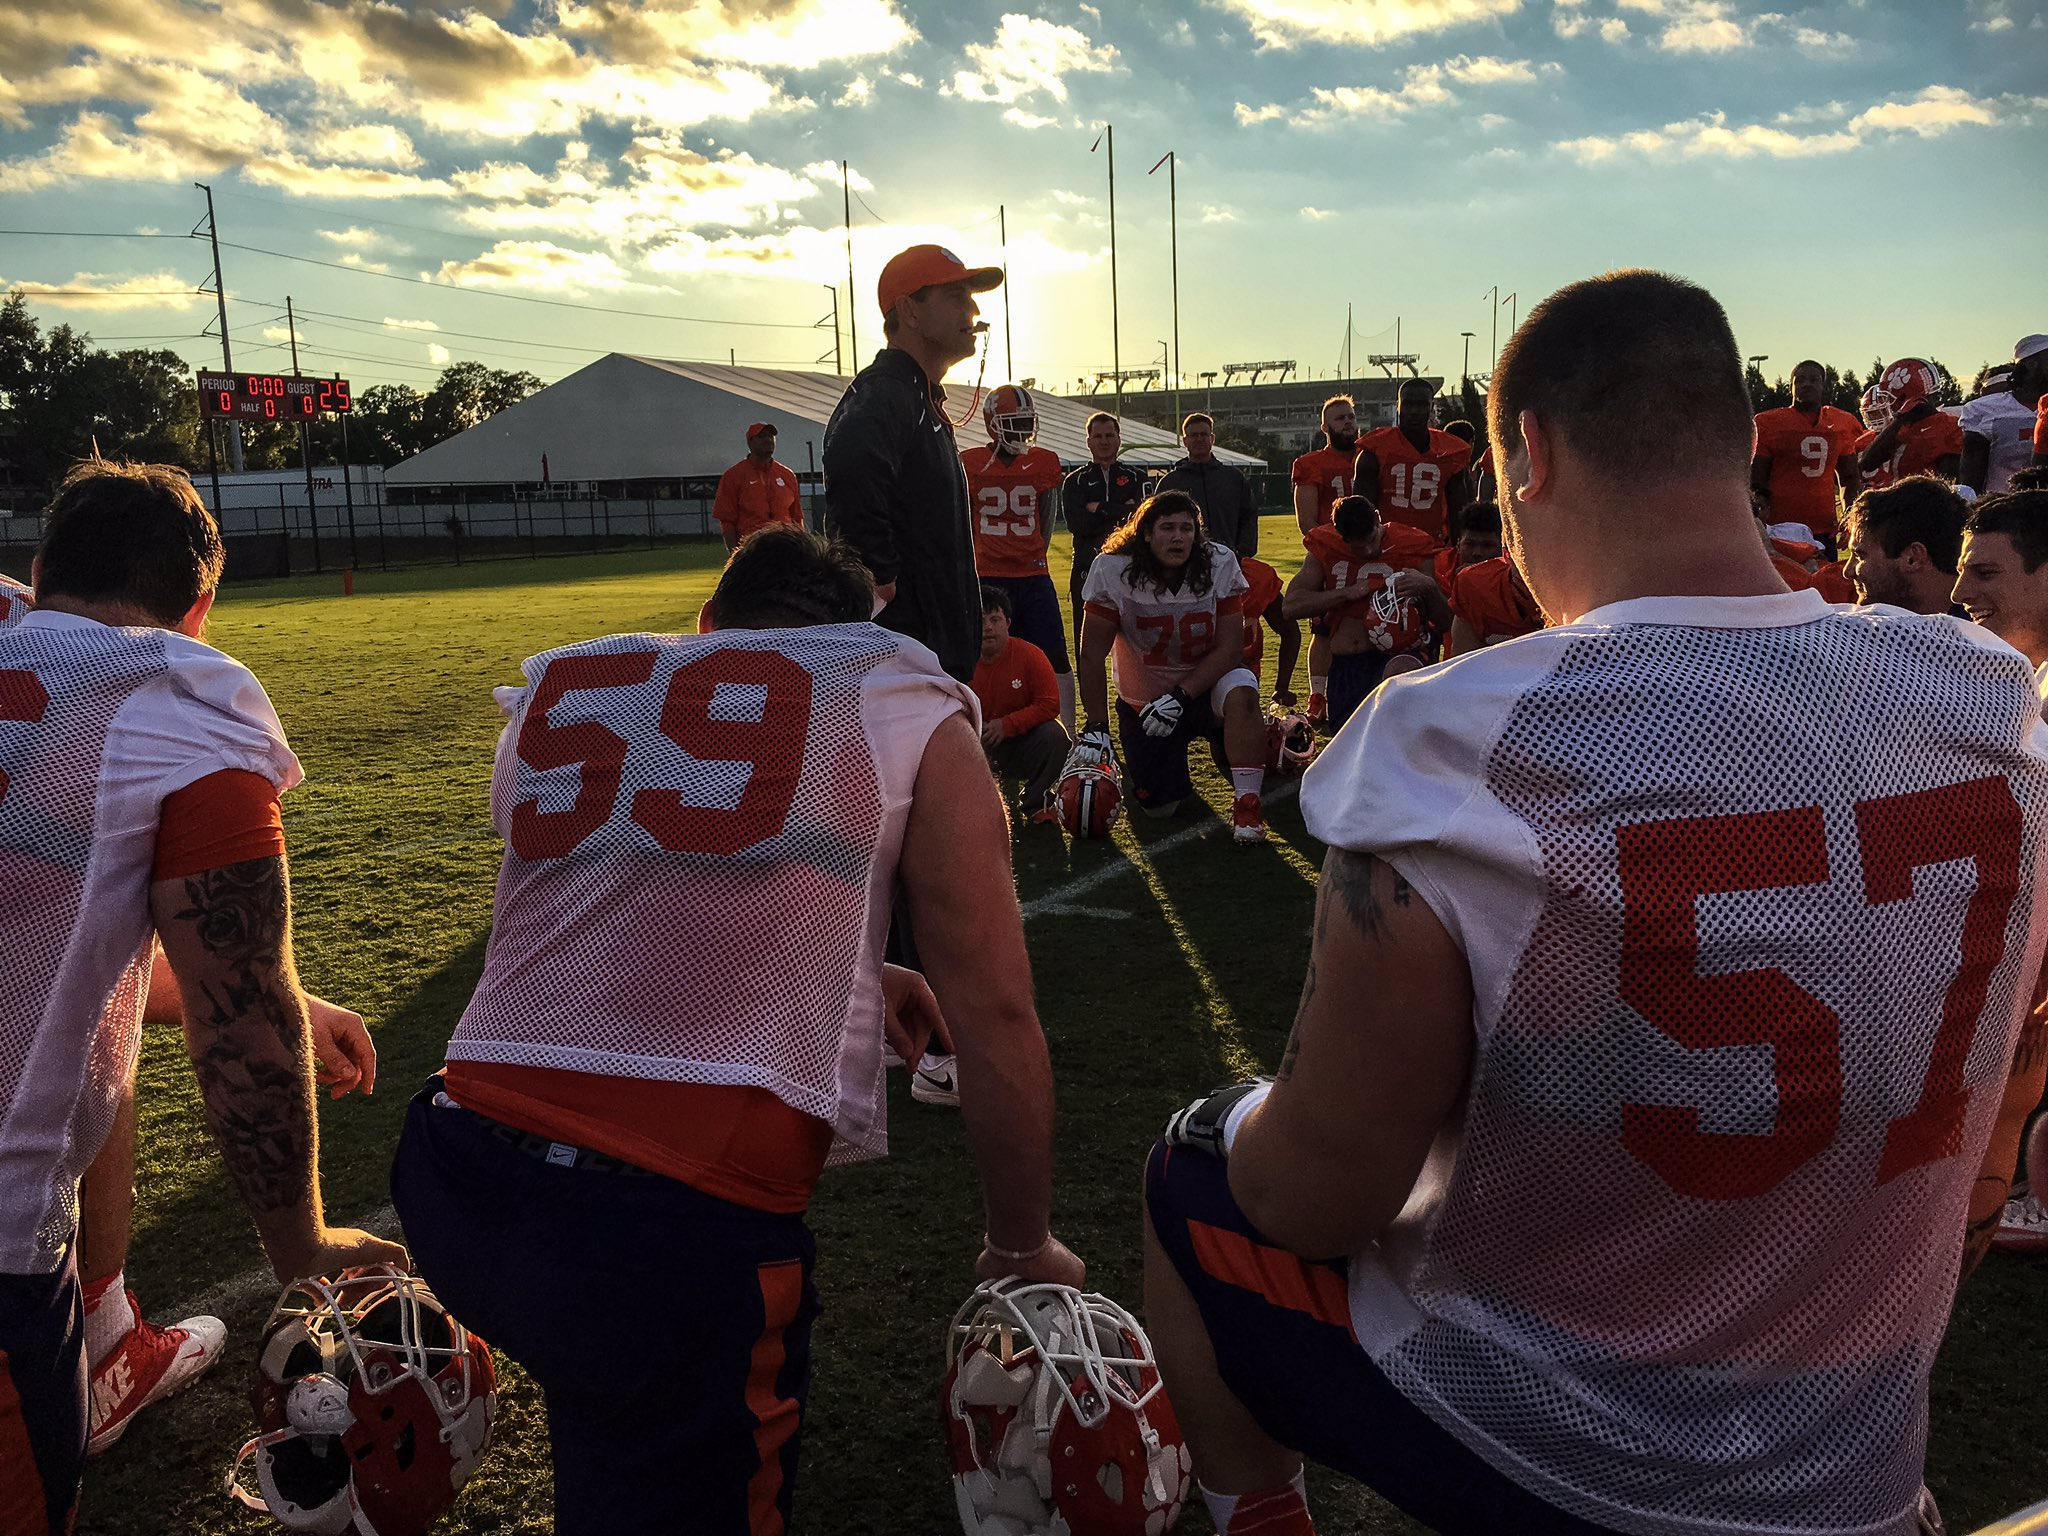 Last practice of the season. #ALLIN all the time. #Clemson #nationalchampionship https://t.co/Xq4fAfgYsk